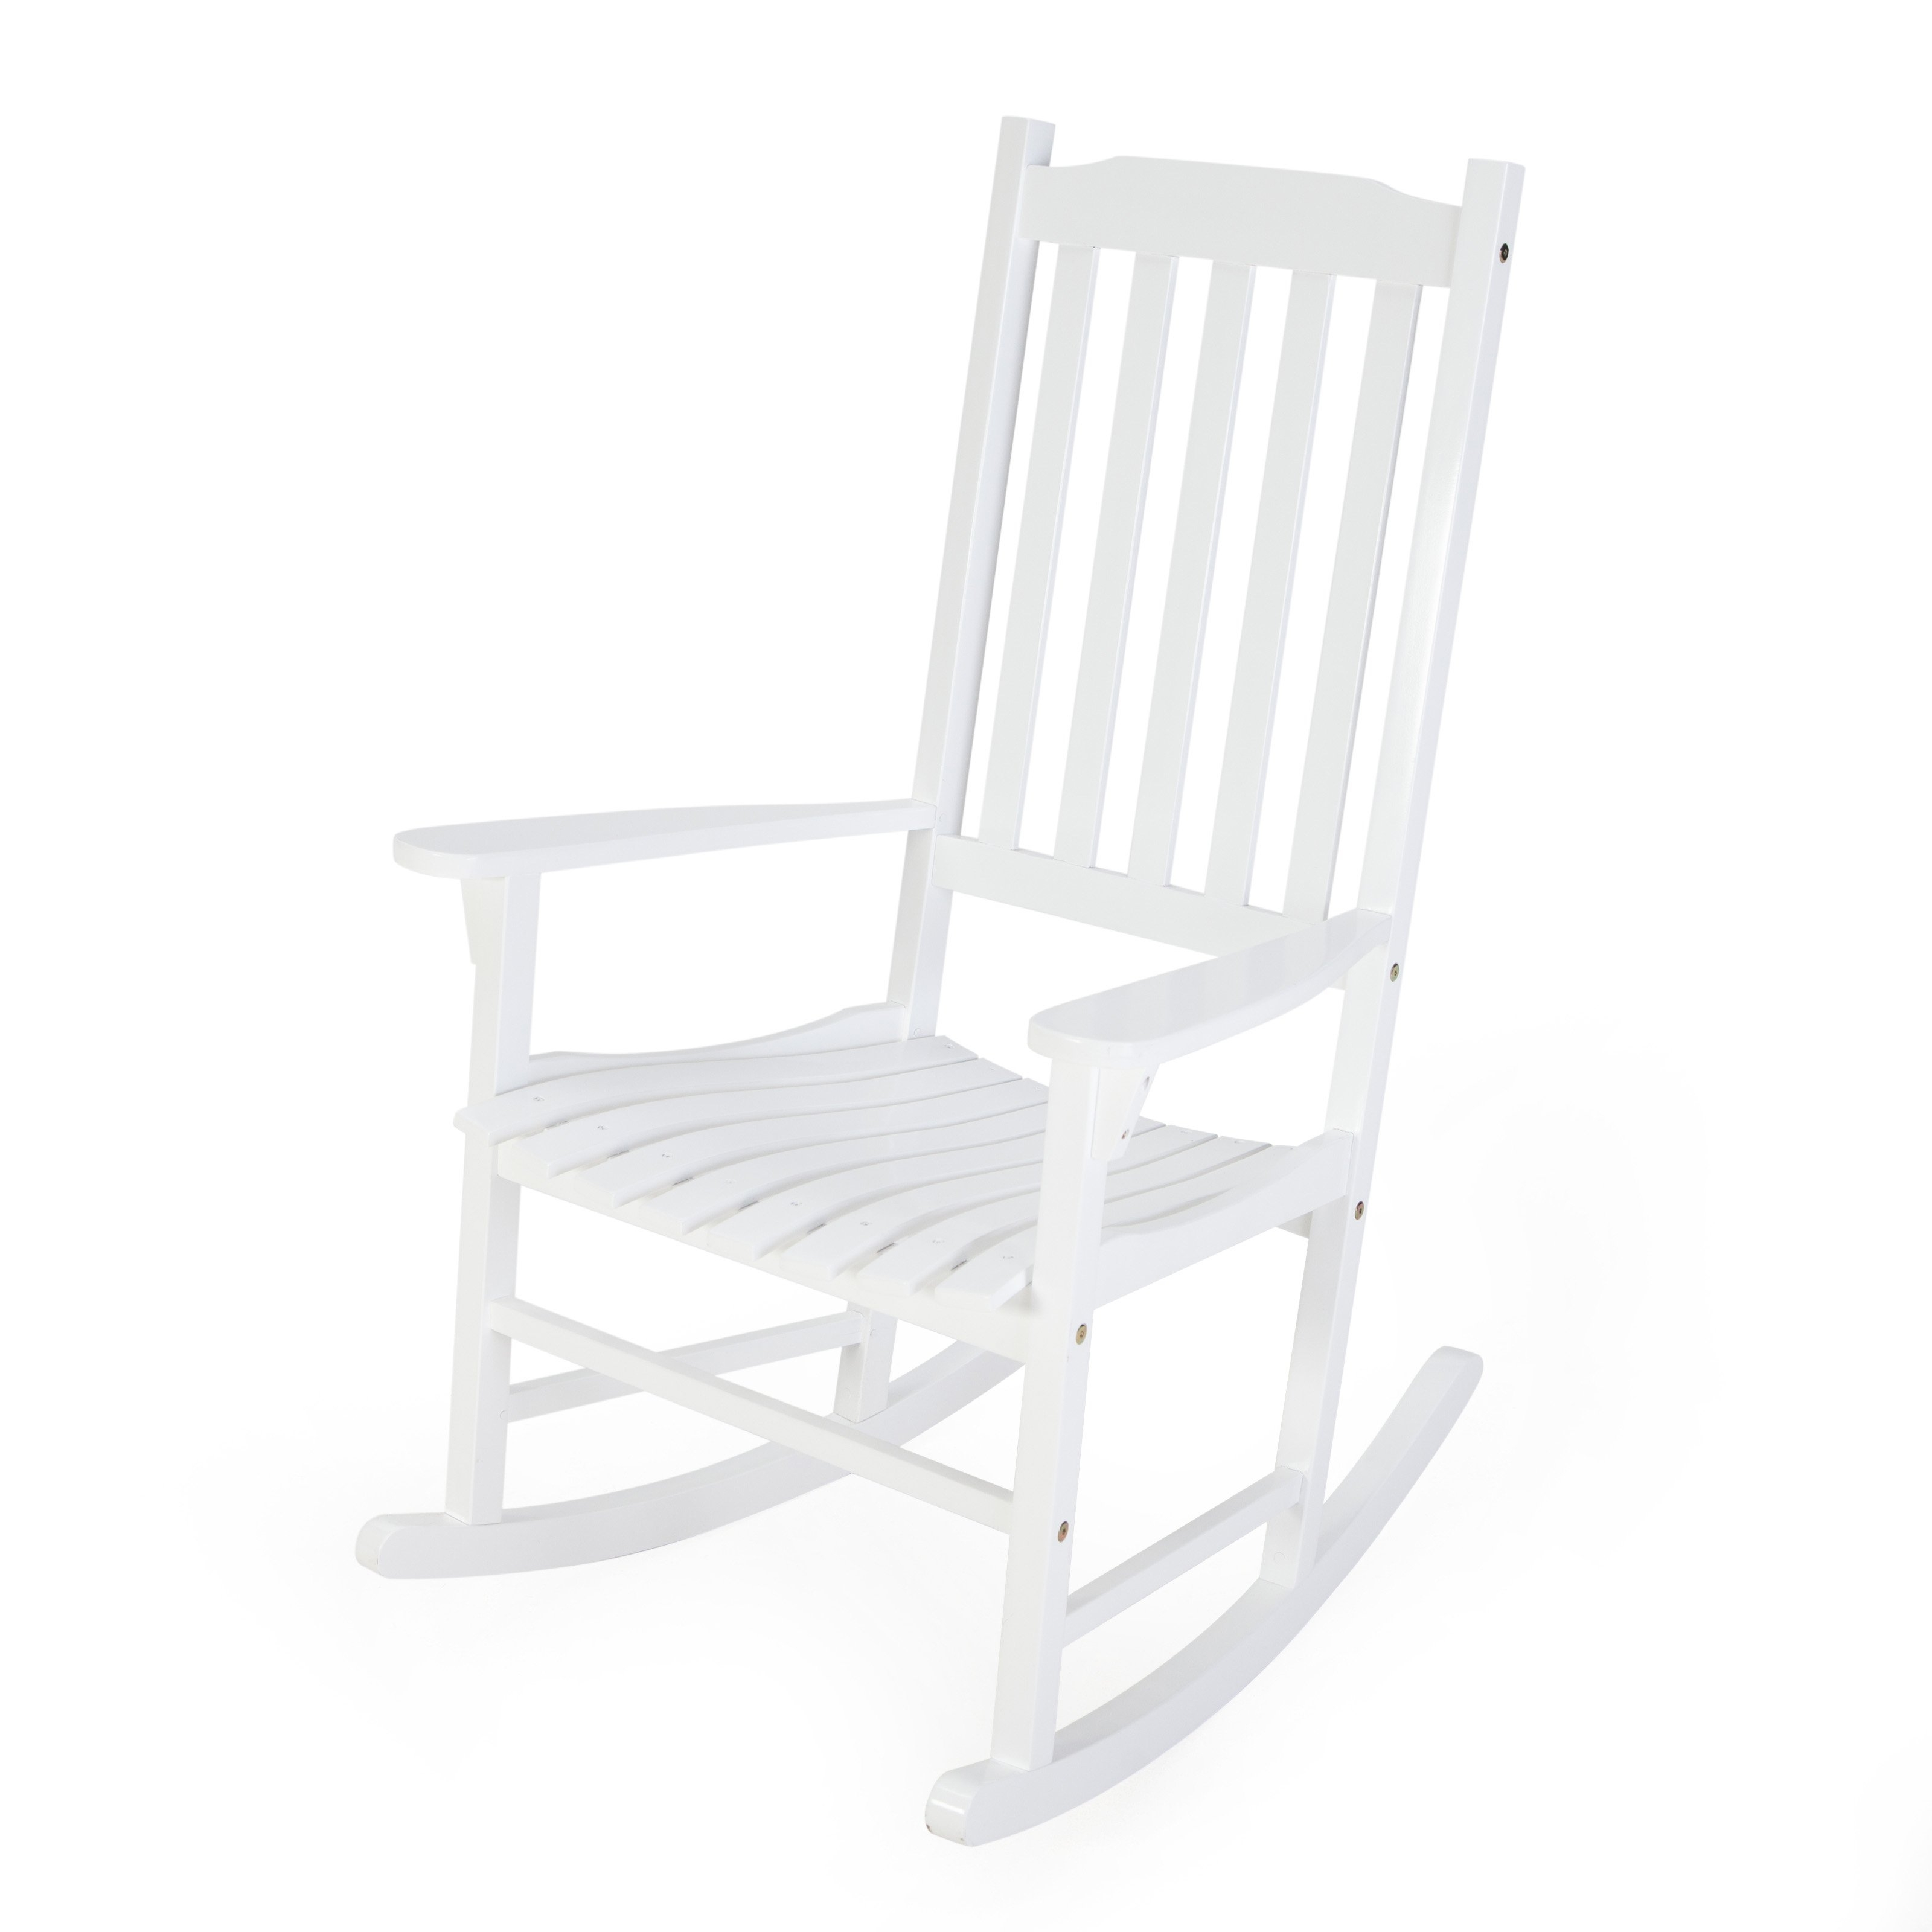 Famous Coral Coast Indoor/outdoor Mission Slat Rocking Chair – White In Rocking Chairs For Adults (View 4 of 20)